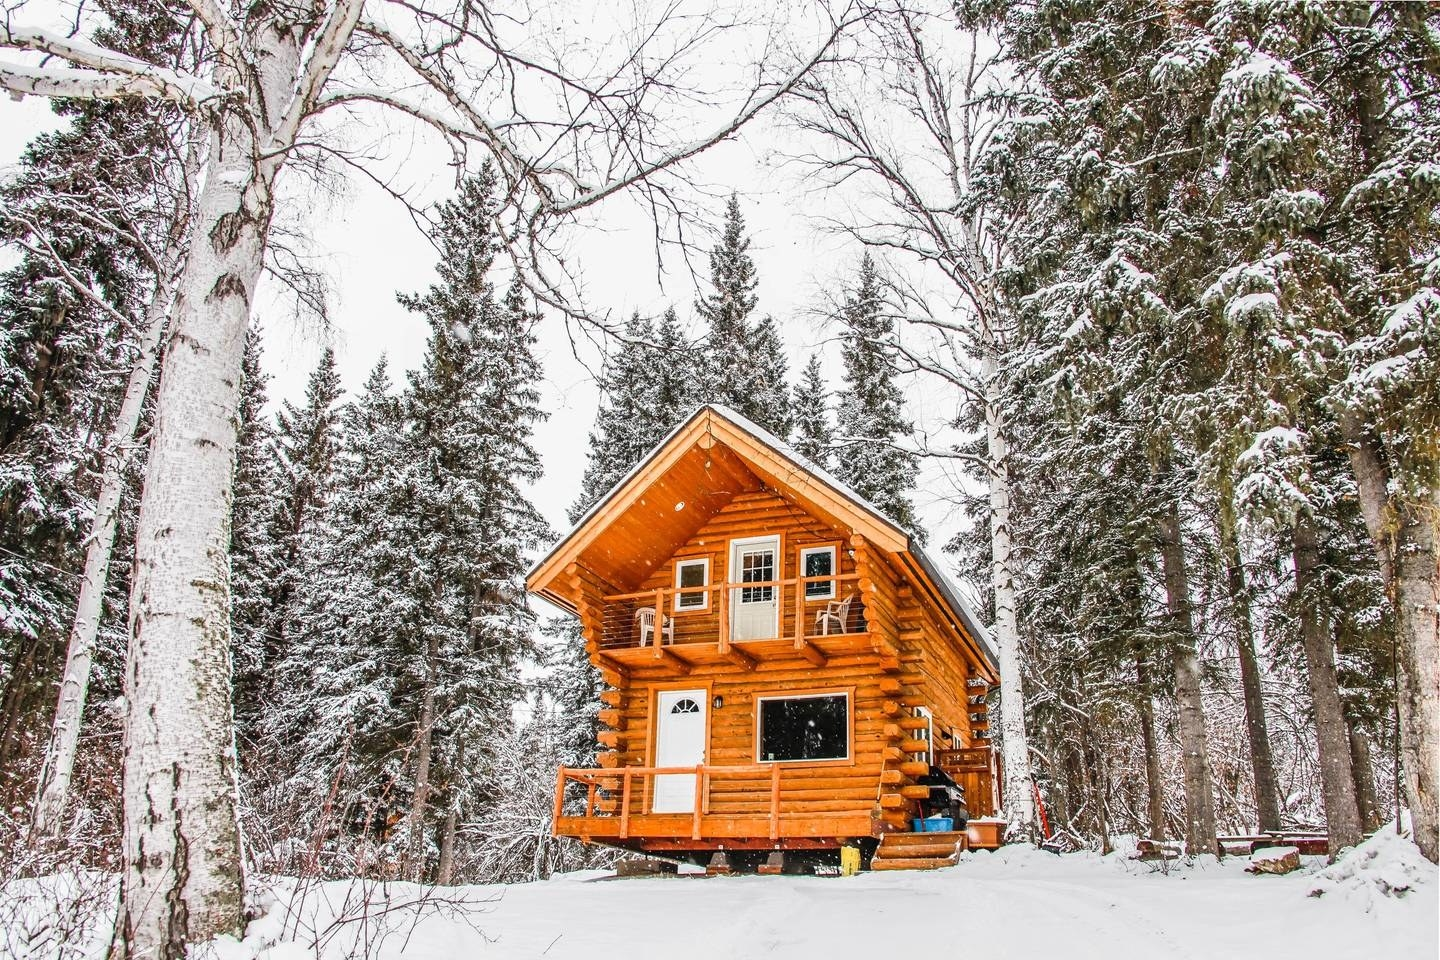 If you're looking to get off the grid, this Alaskan getaway is calling your name. P.S.: Can you imagine what the Northern Lights look like from here? See the listing here.